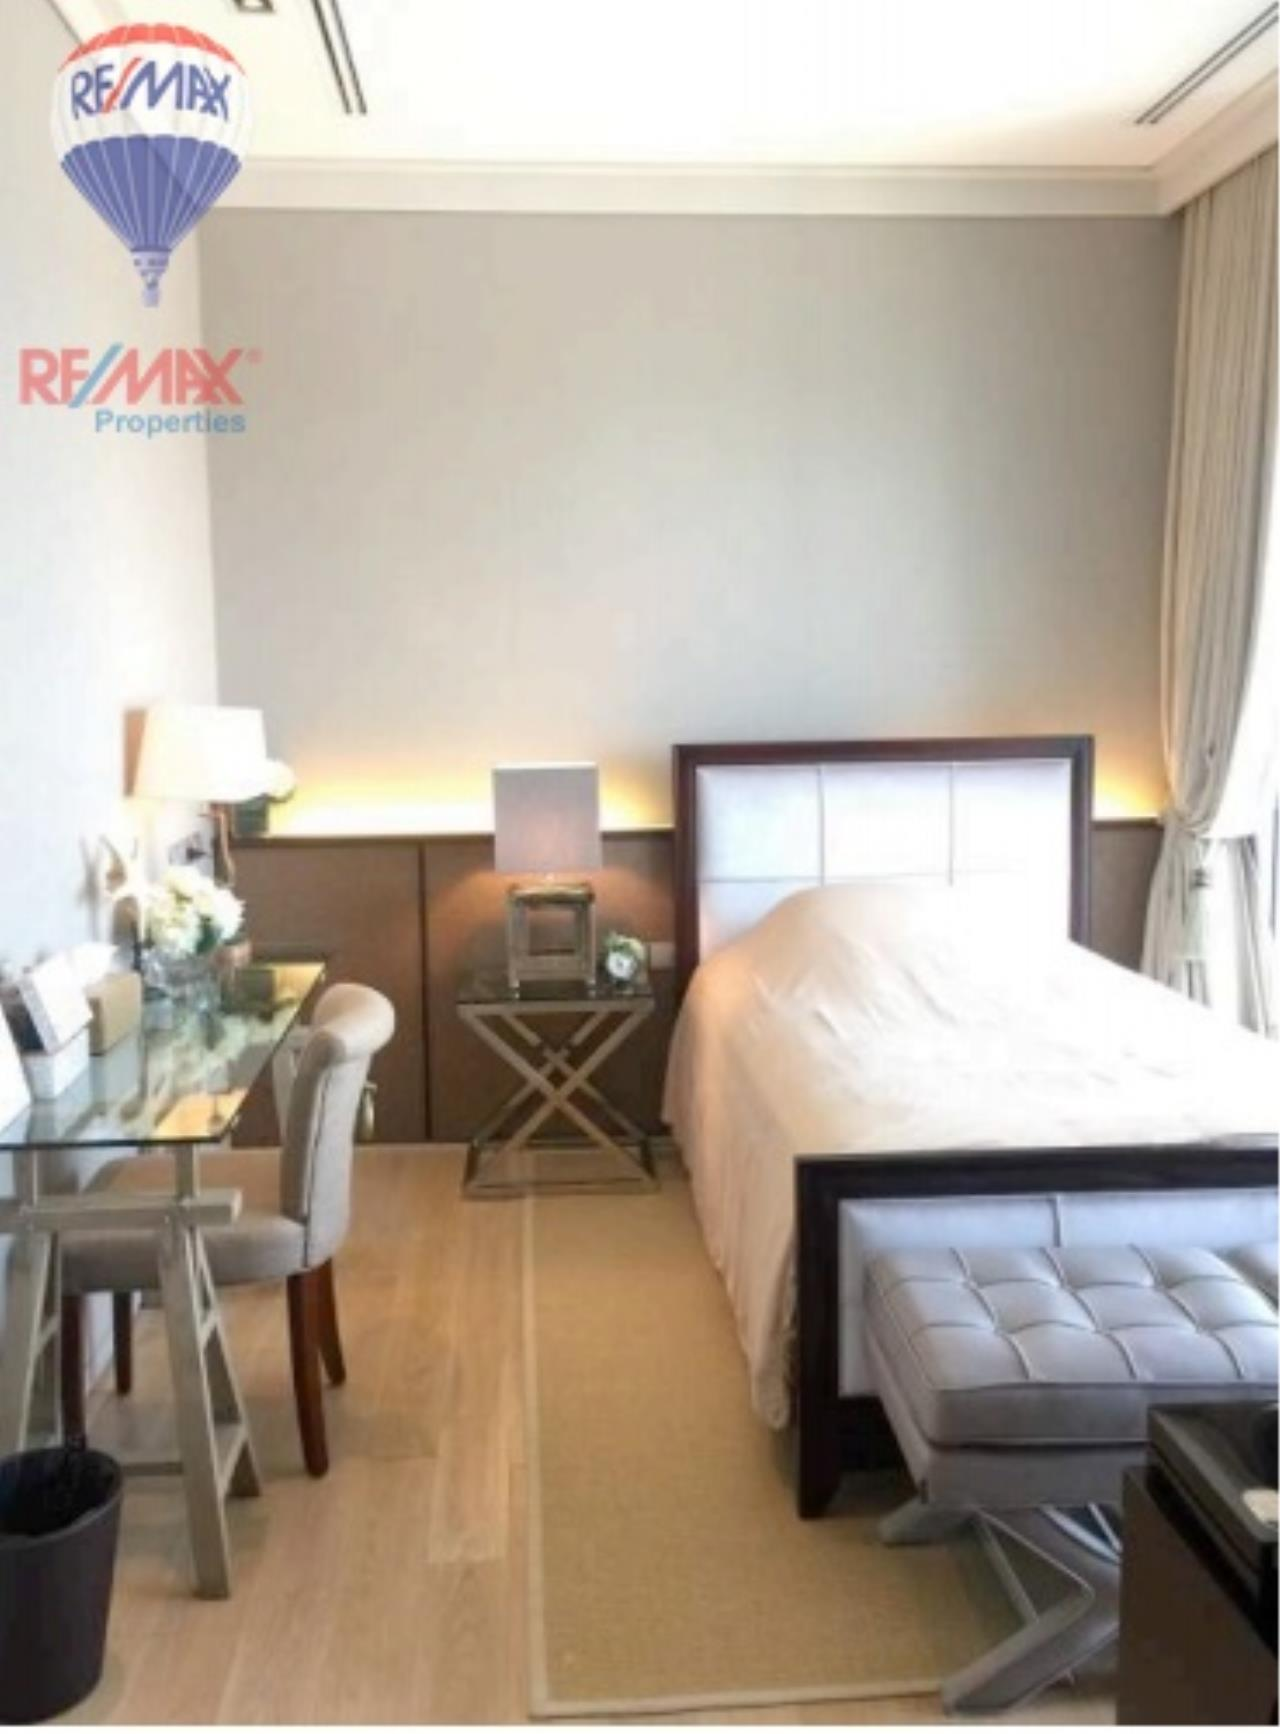 RE/MAX Properties Agency's SALE 3 Bedroom 235 Sq.m Duplex Penthouse at Millennium Residence 20